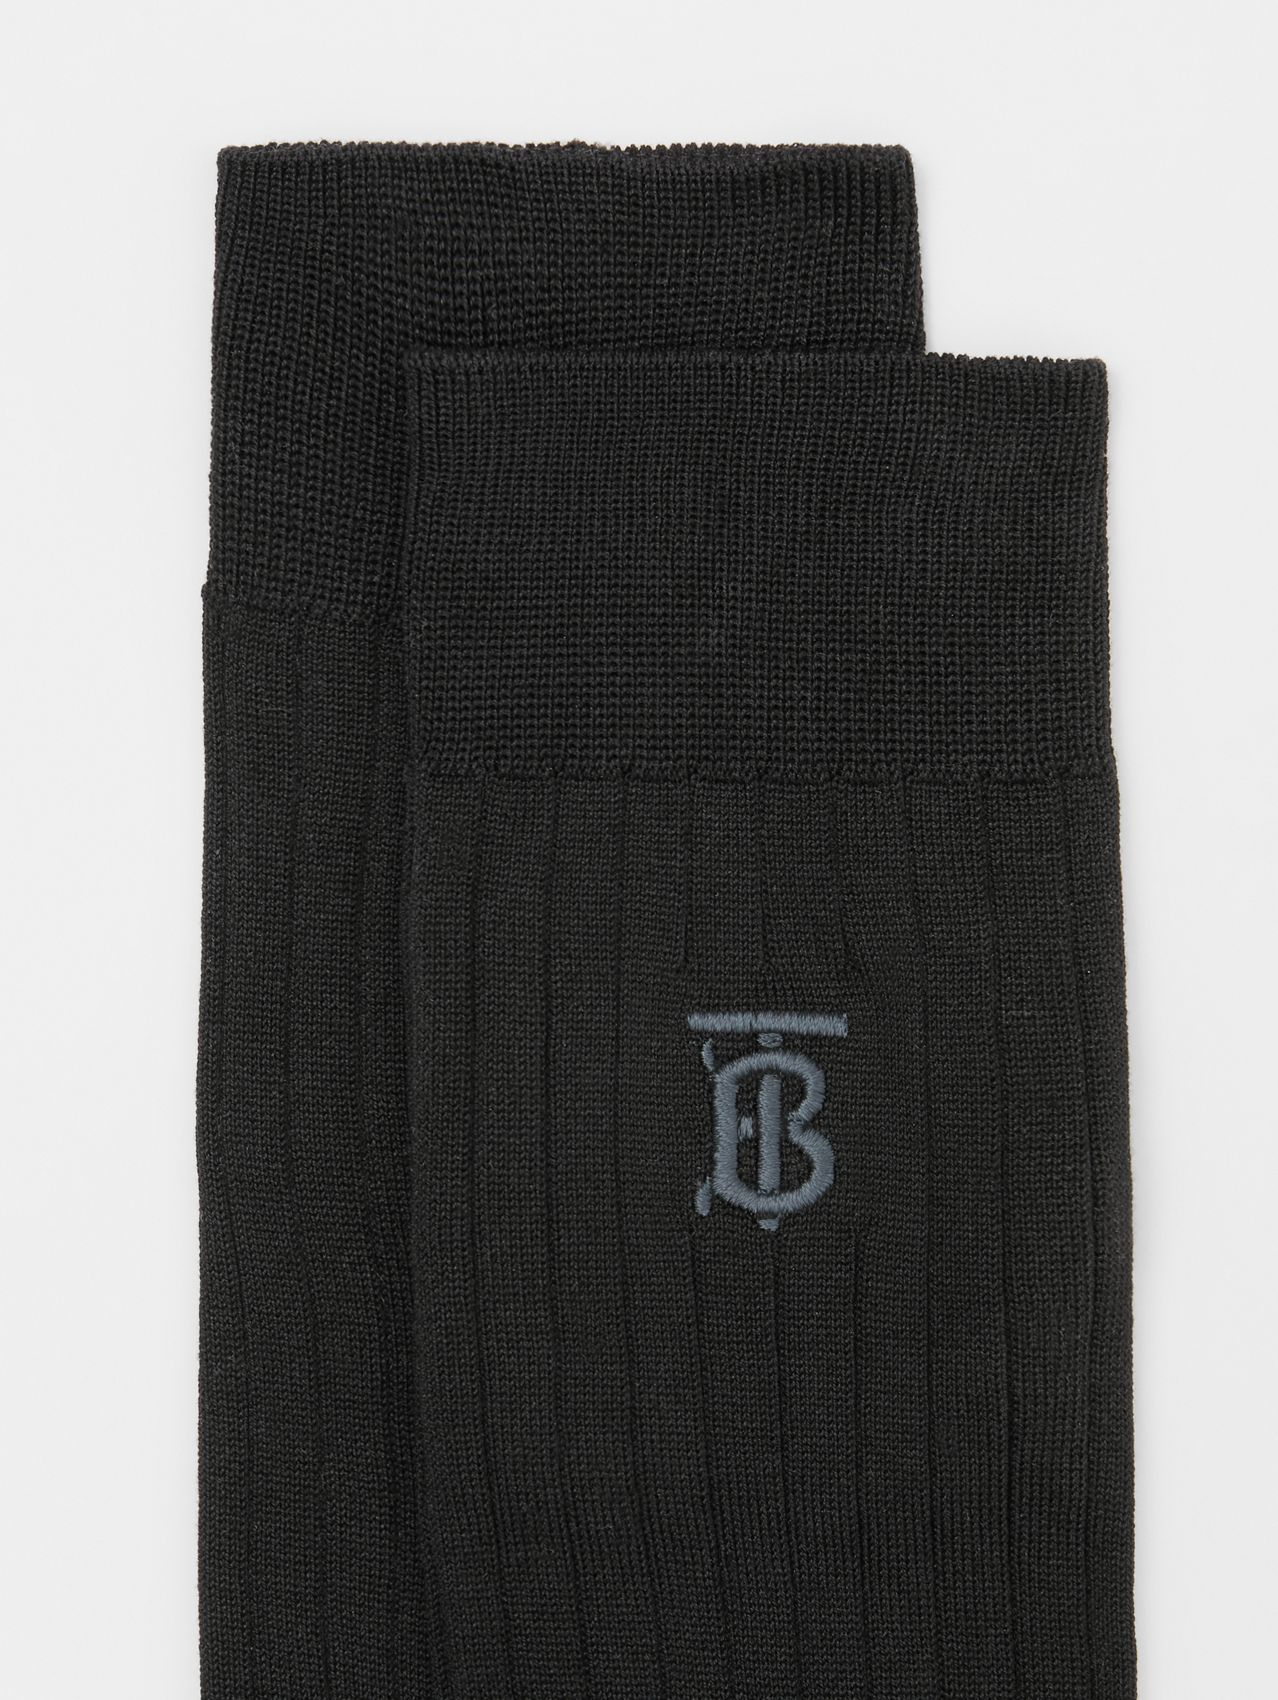 Monogram Motif Cotton Blend Socks in Black